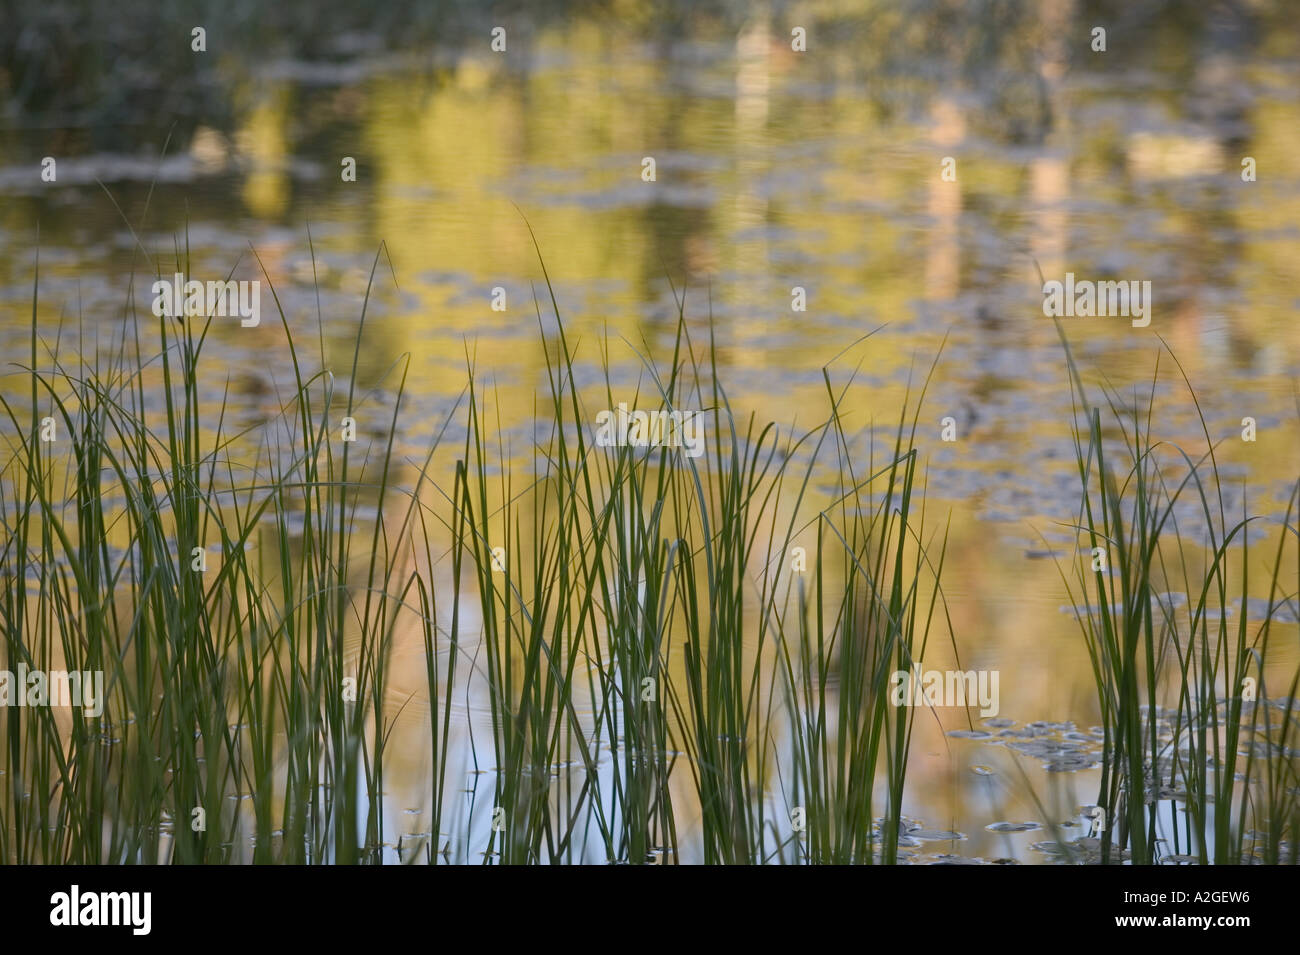 USA, California, Yosemite National Park: Siesta Lake (off Tioga Road) Morning Light, Grasses & Reflections Stock Photo